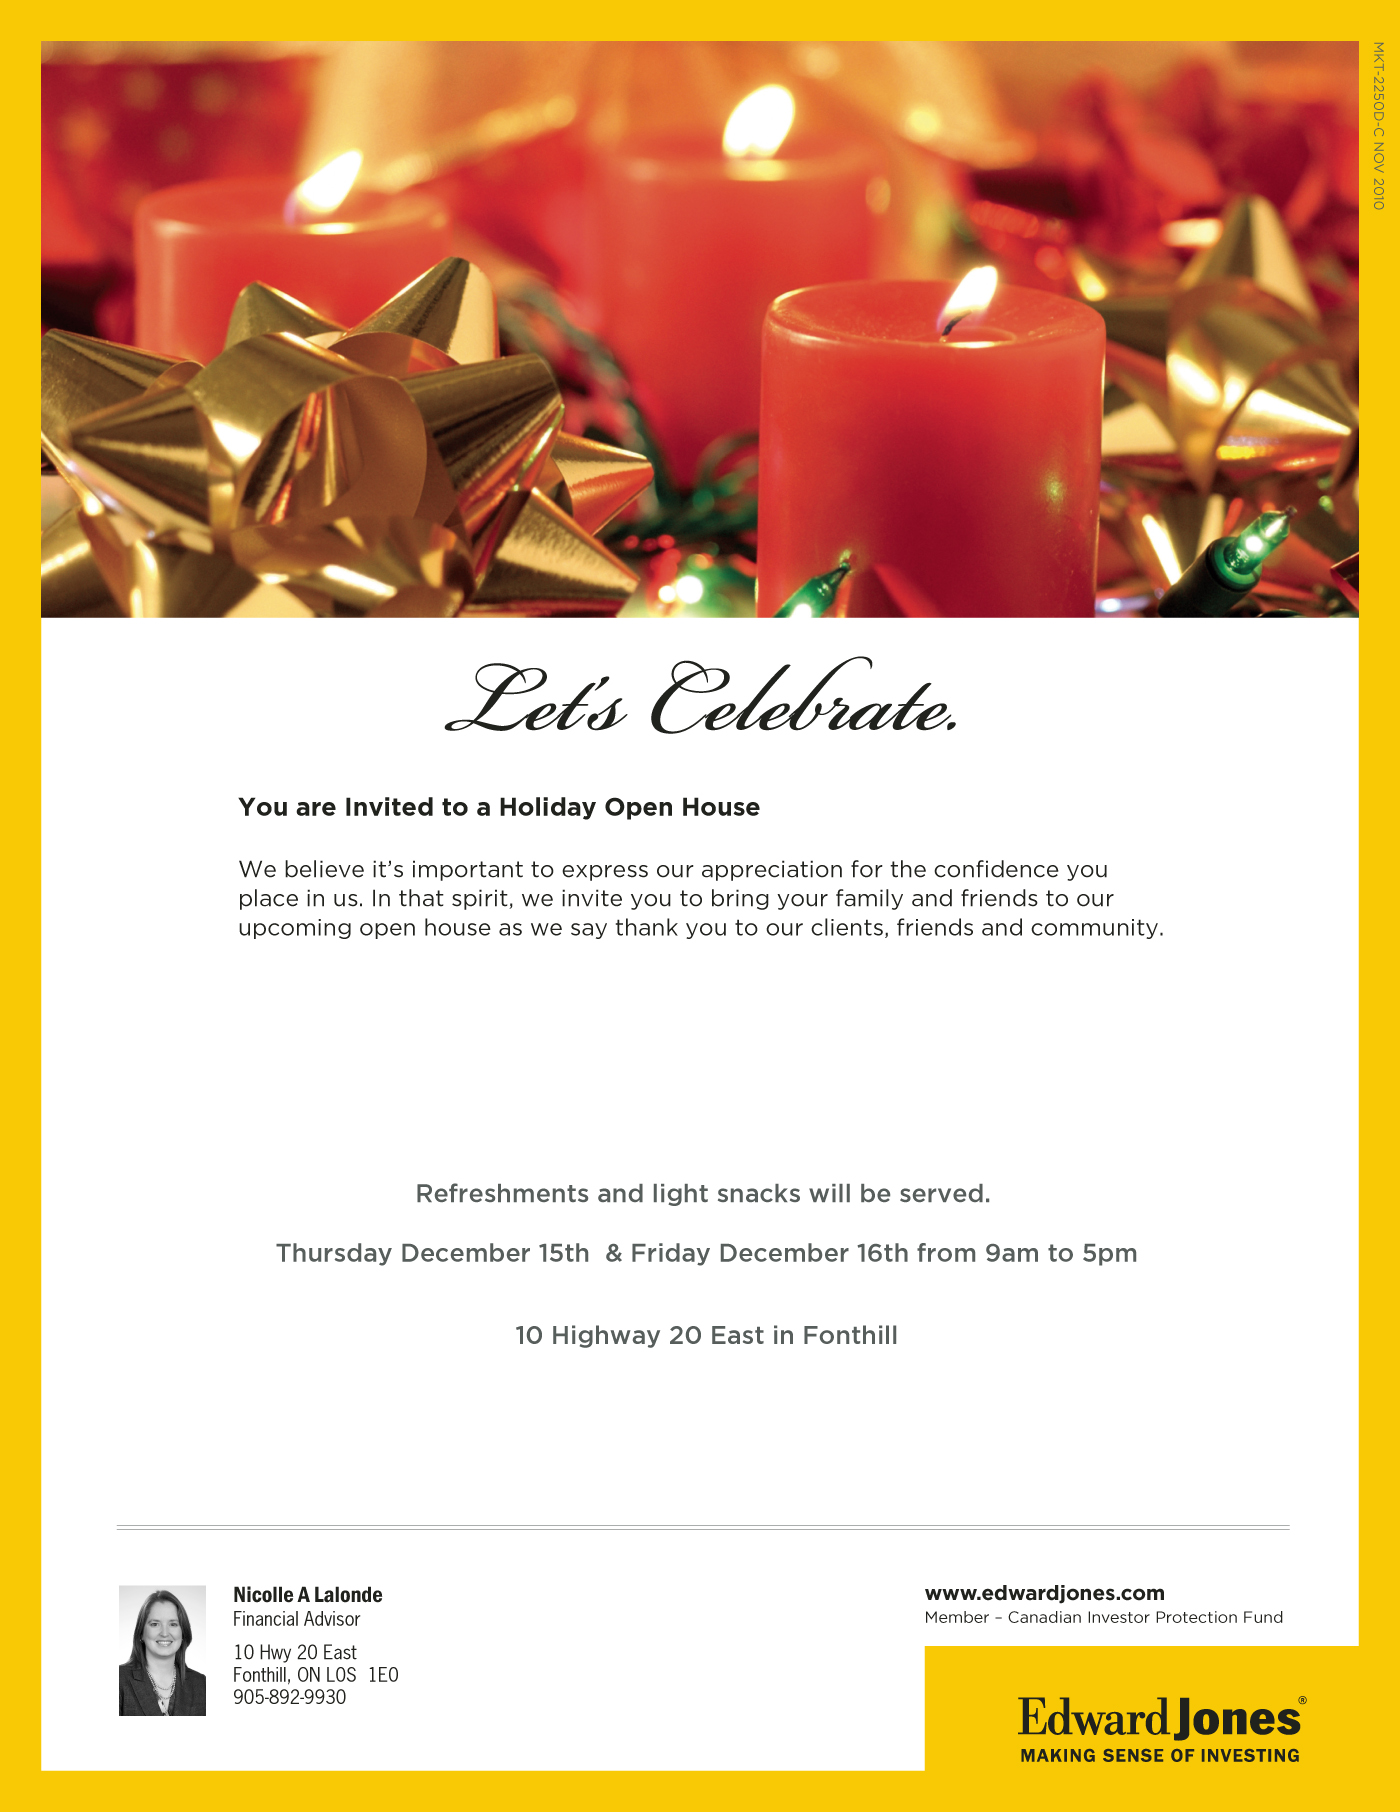 Let's Celebrate.  You are Invited to a Holiday Open House  We believe it's important to express our appreciation for the confidence you place in us. In that spirit, we invite you to bring your family and friends to our upcoming open house as we say thank you to our clients, friends and community.  Refreshments and light snacks will be served.  Thursday December 15th & Friday December 16th from 9am to 5pm  10 Highway 20 East in Fonthill   Nicolle A Lalonde Financial Advisor 10 Hwy 20 East Fonthill, ON L0S 1E0 905-892-9930  www.edwardjones.com Member – Canadian Investor Protection Fund